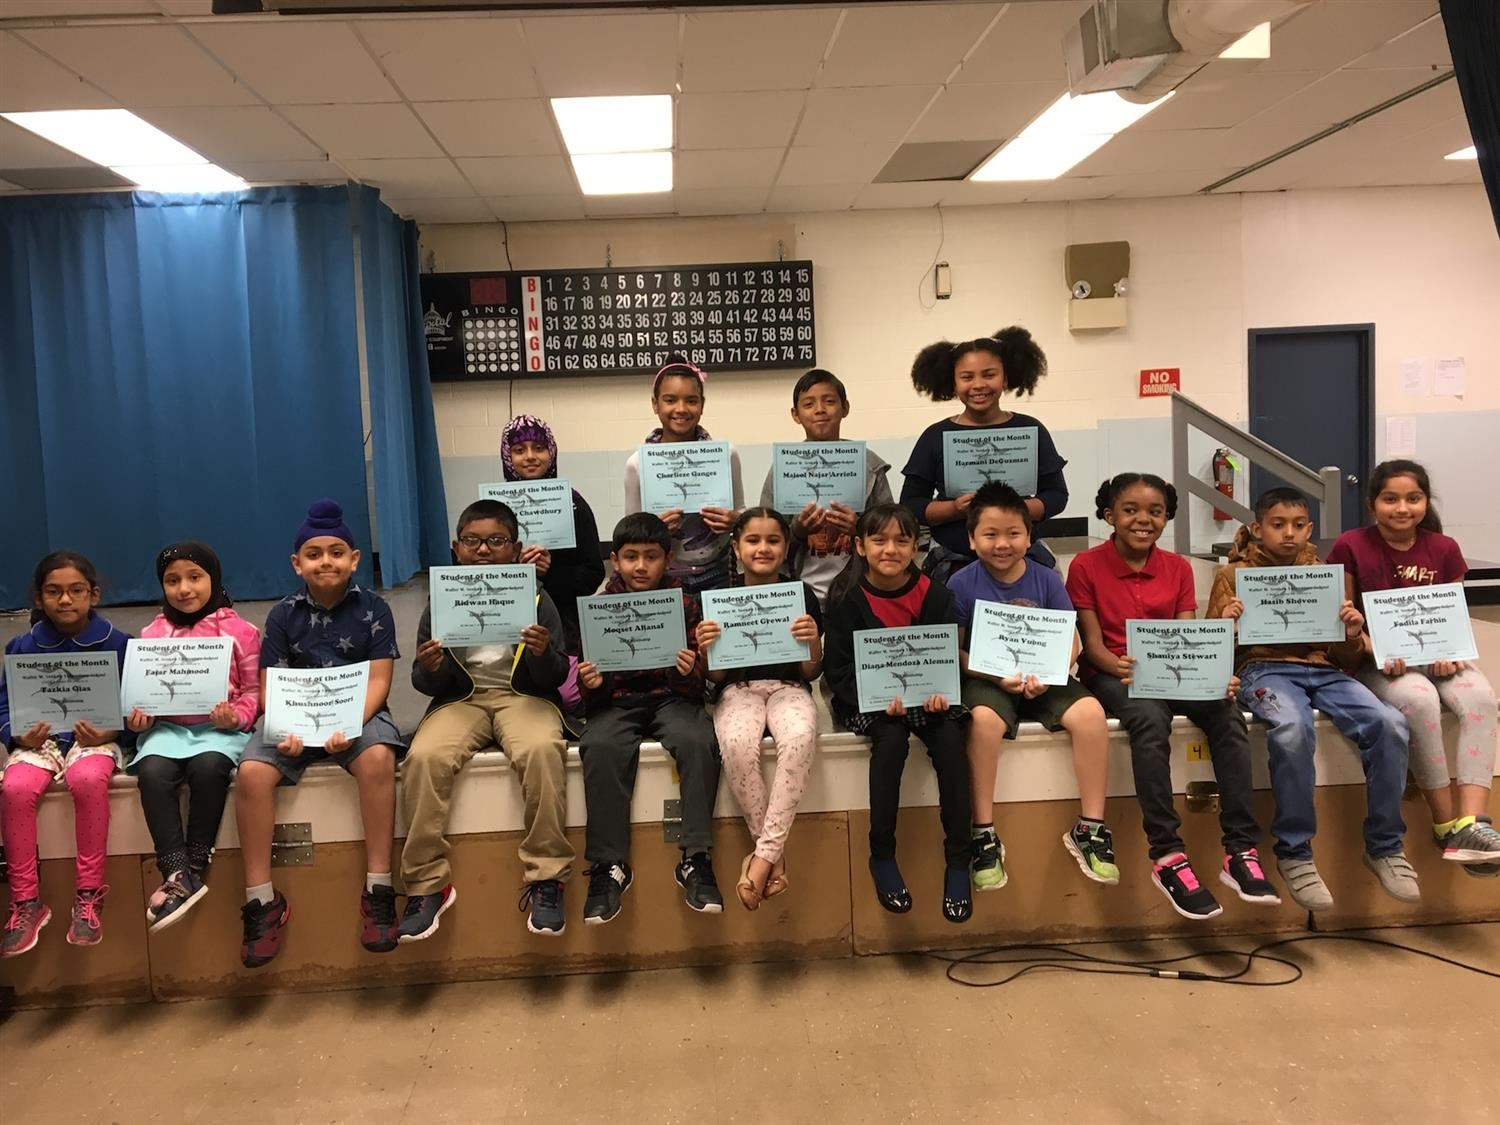 January Student of the Month - Topic: Kindness